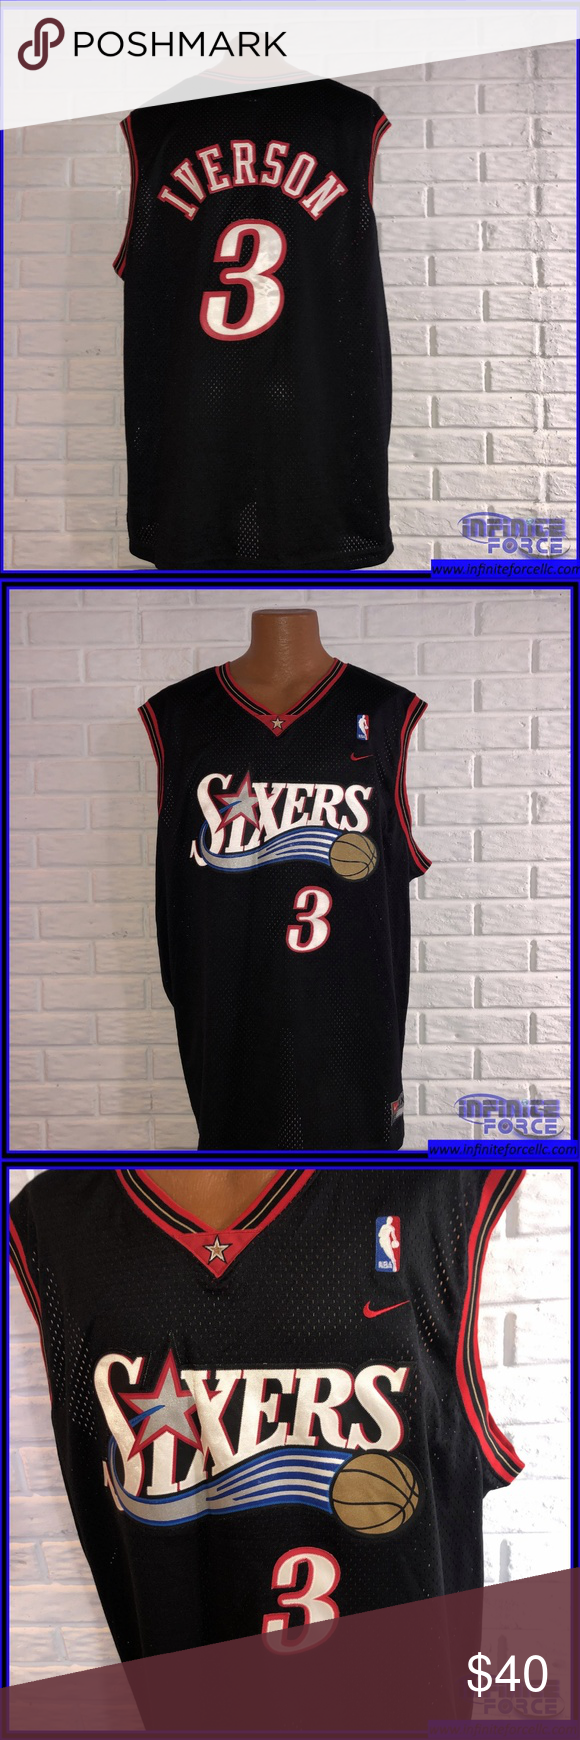 low priced 4e181 234ab Nike Iverson #3 Sixers Jersey-Size 48 Throwback Vintage Nike ...